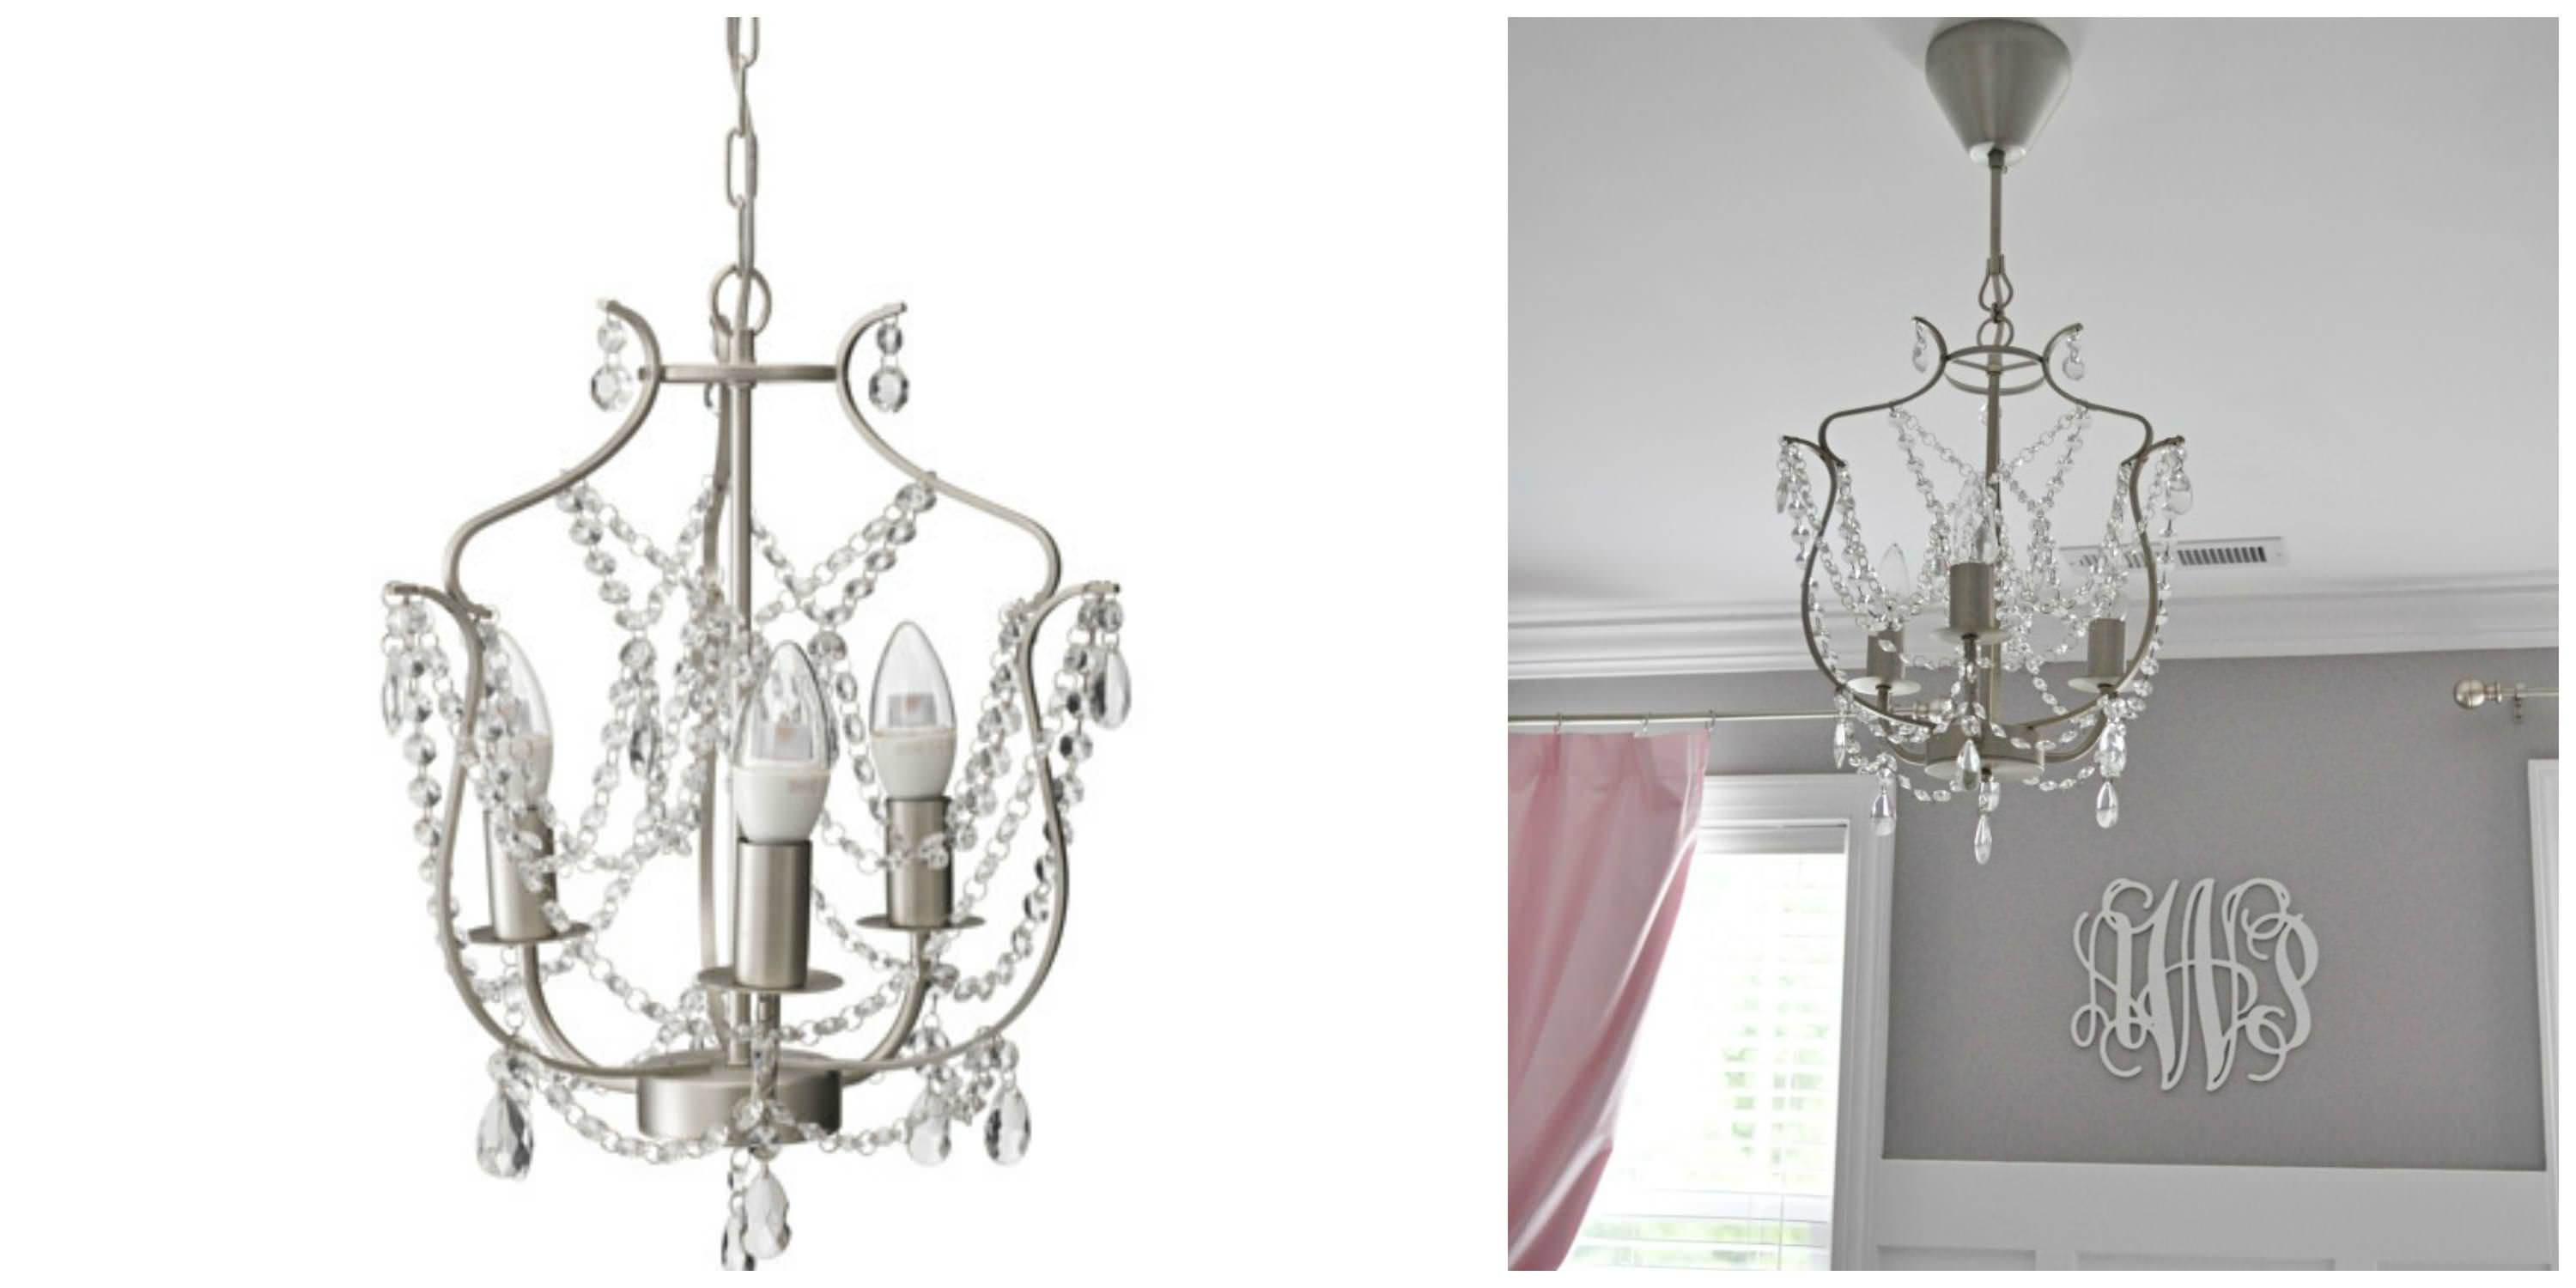 Best things to buy at ikea including this kristaller chandelier